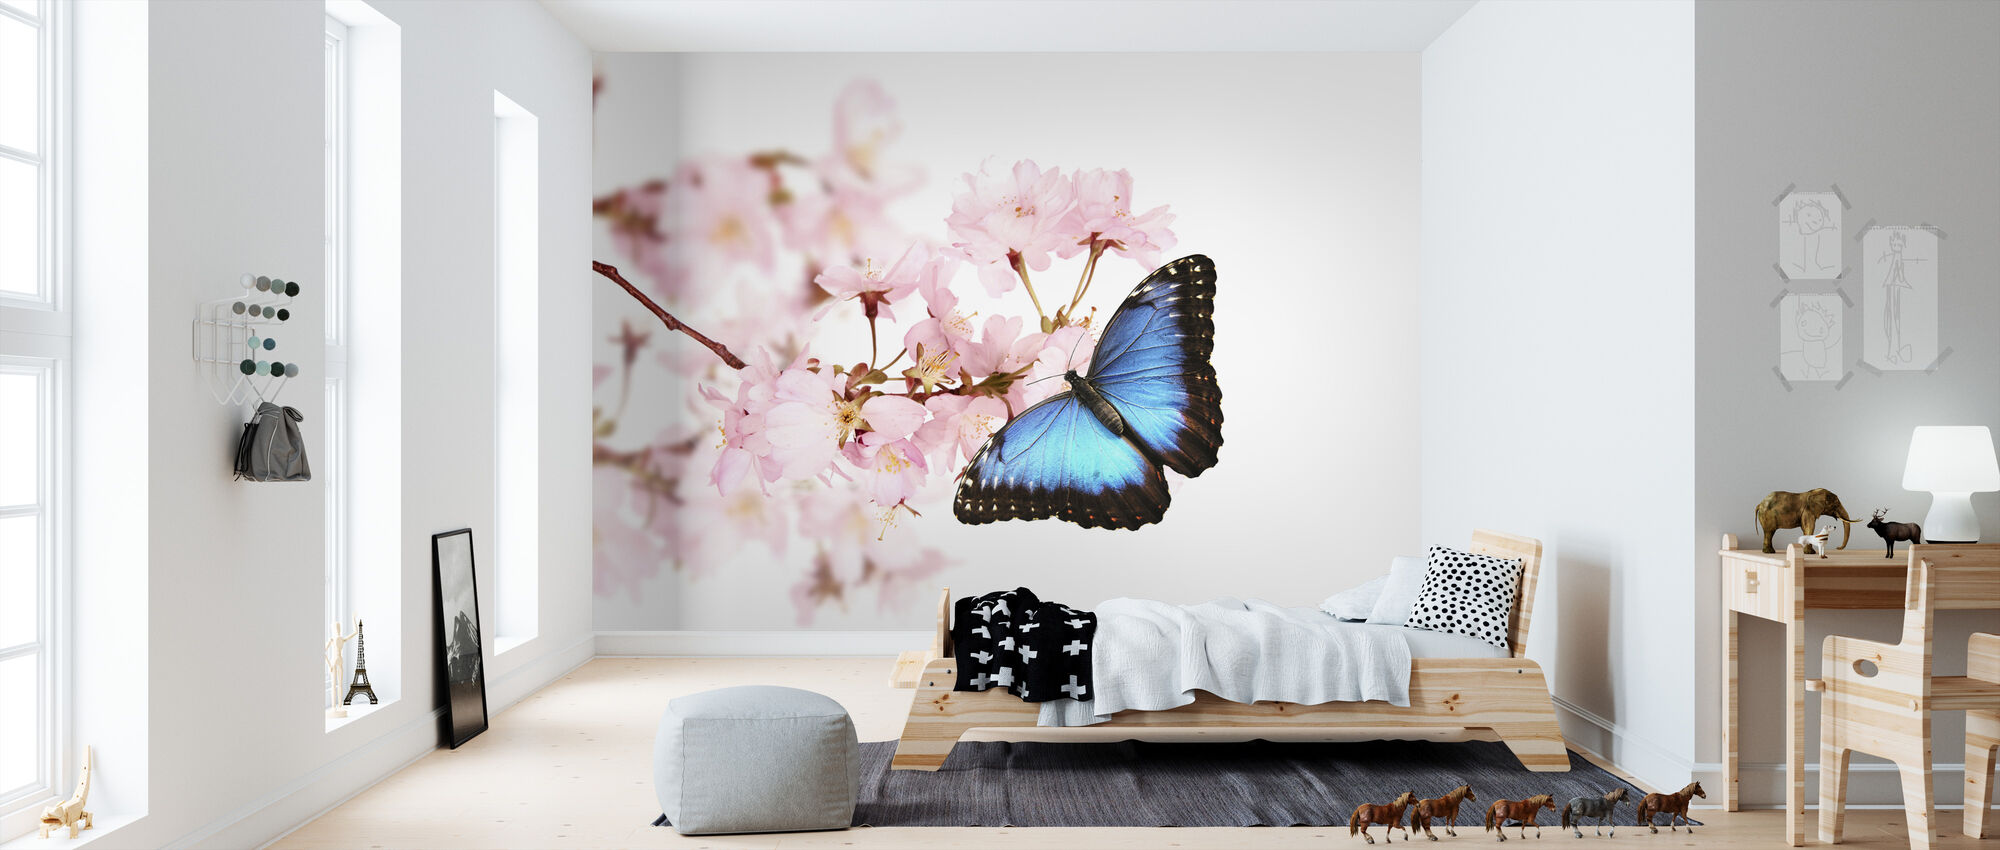 Butterfly Cherry Blossoms - Wallpaper - Kids Room